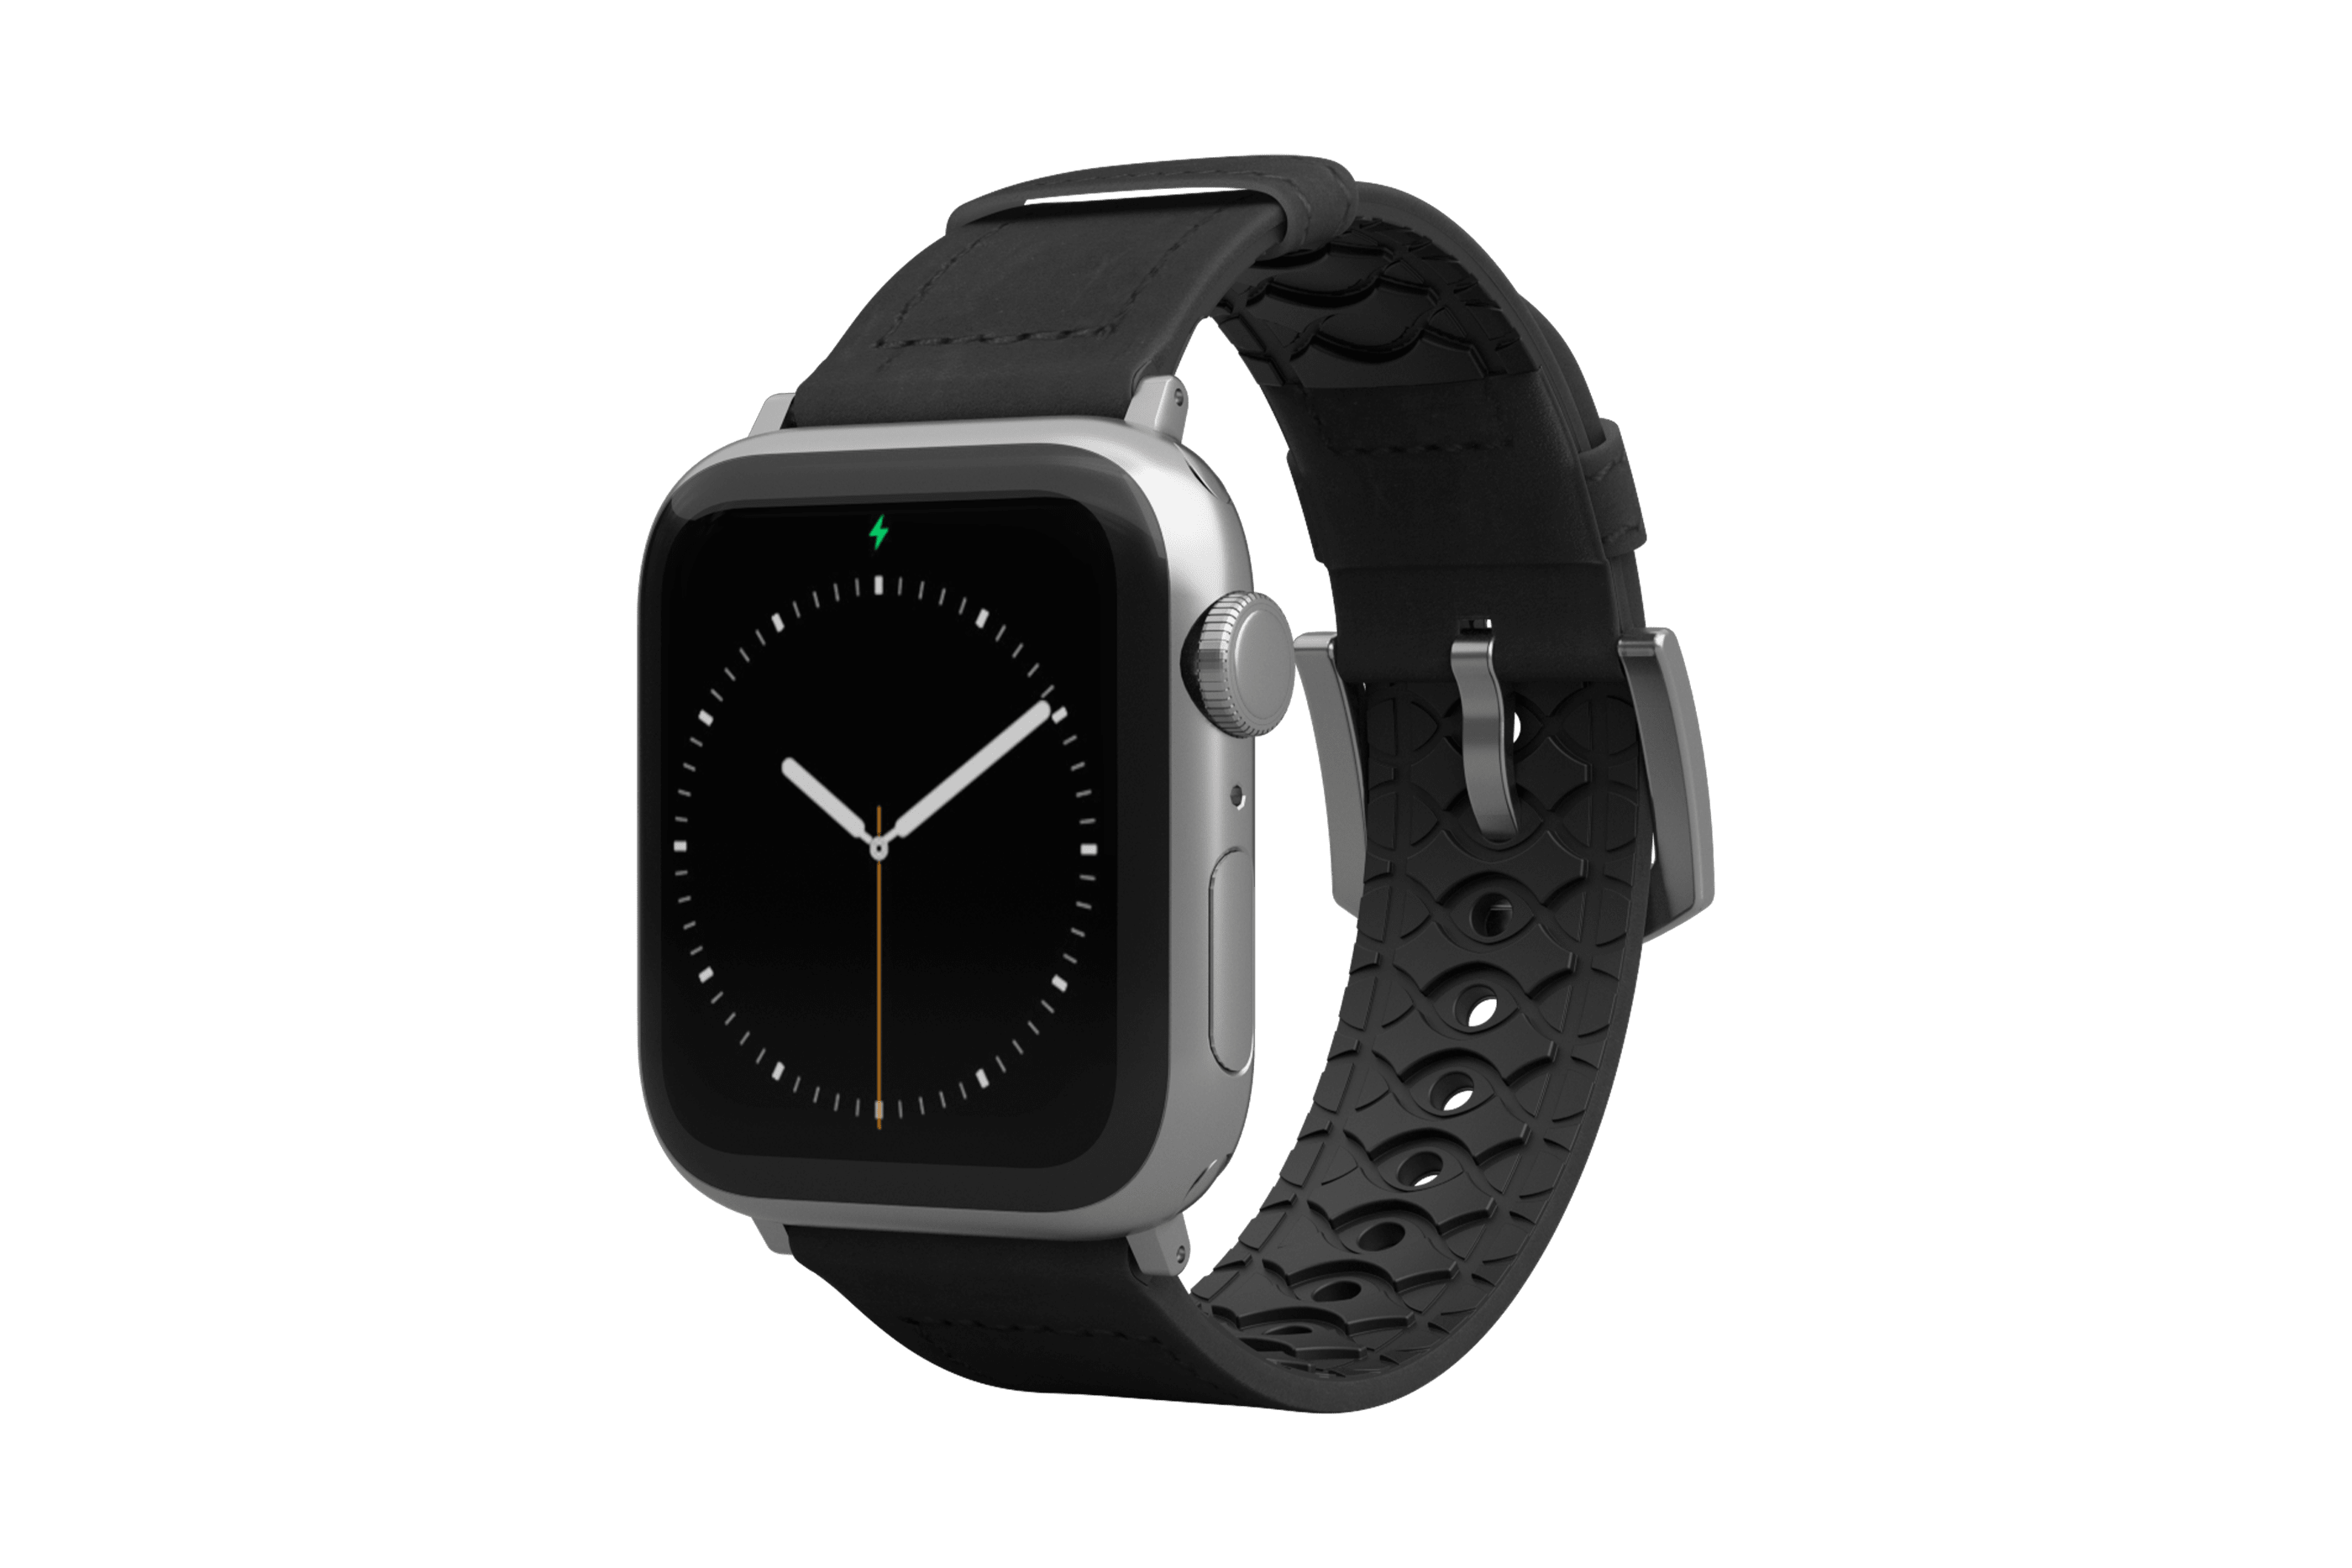 Vulcan Obsidian Black Leather Apple Watch Band with silver hardware viewed front on